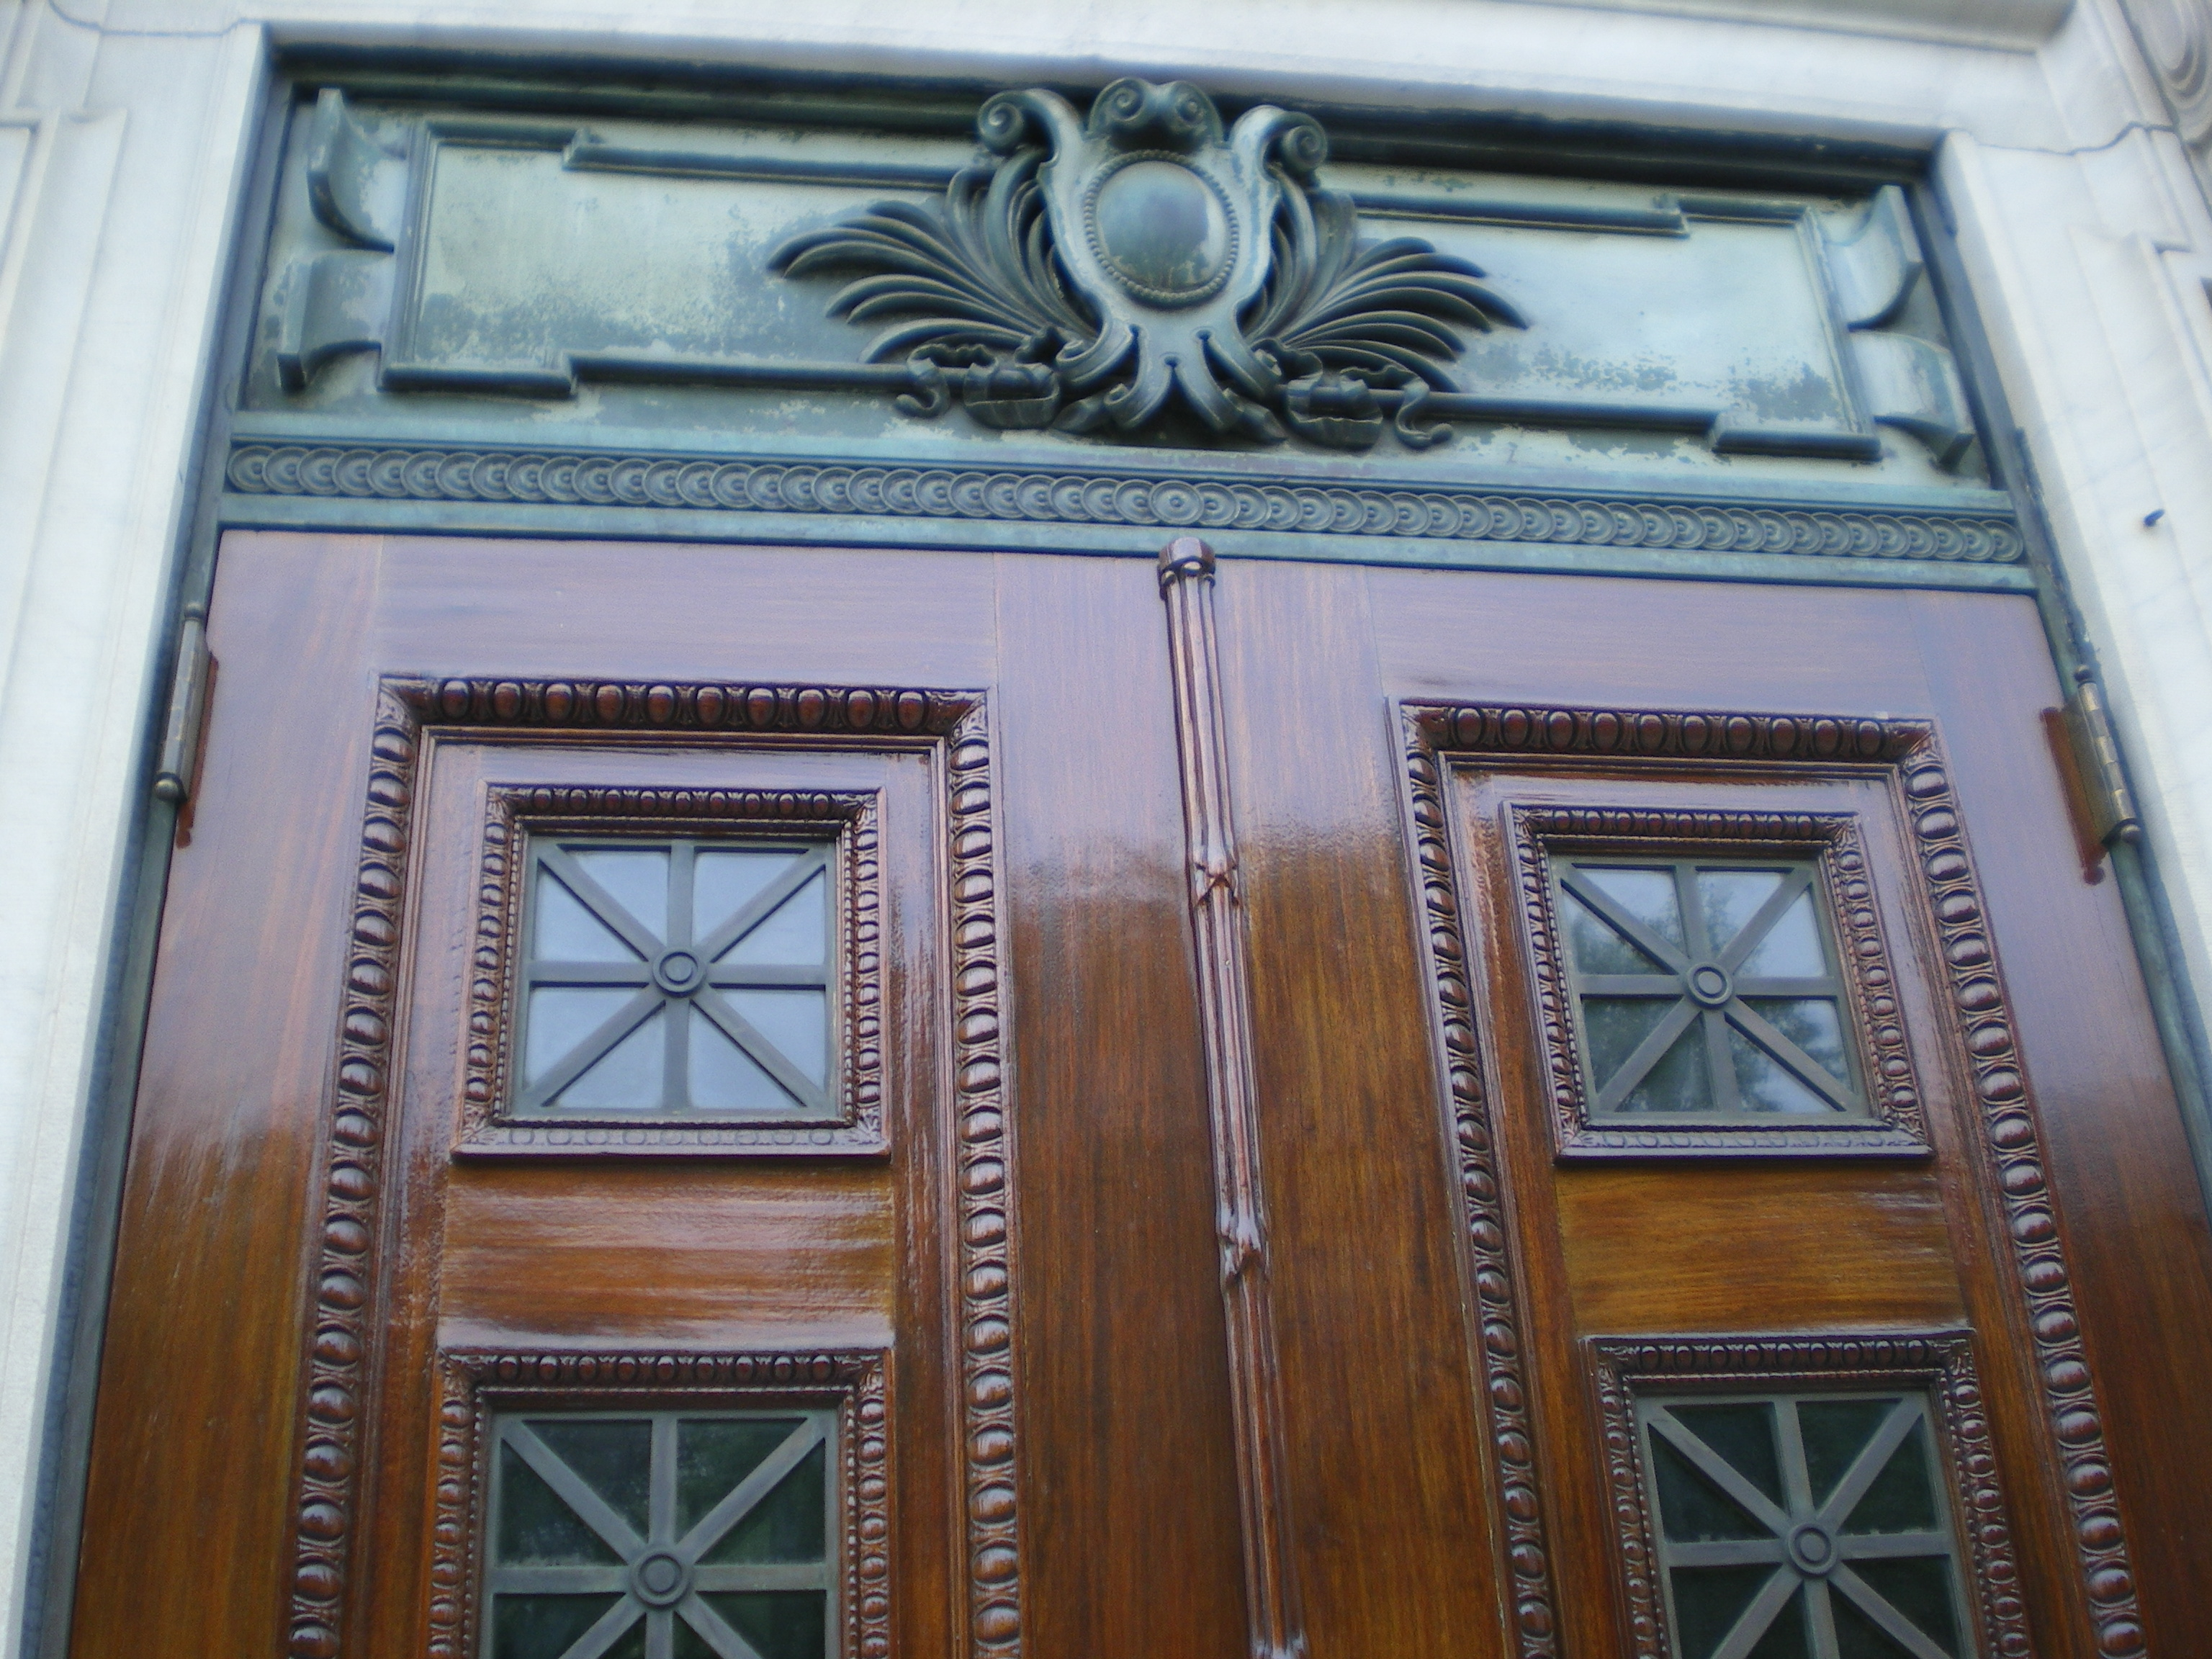 10W 68th St, NYC Doors After restoration (close-up)